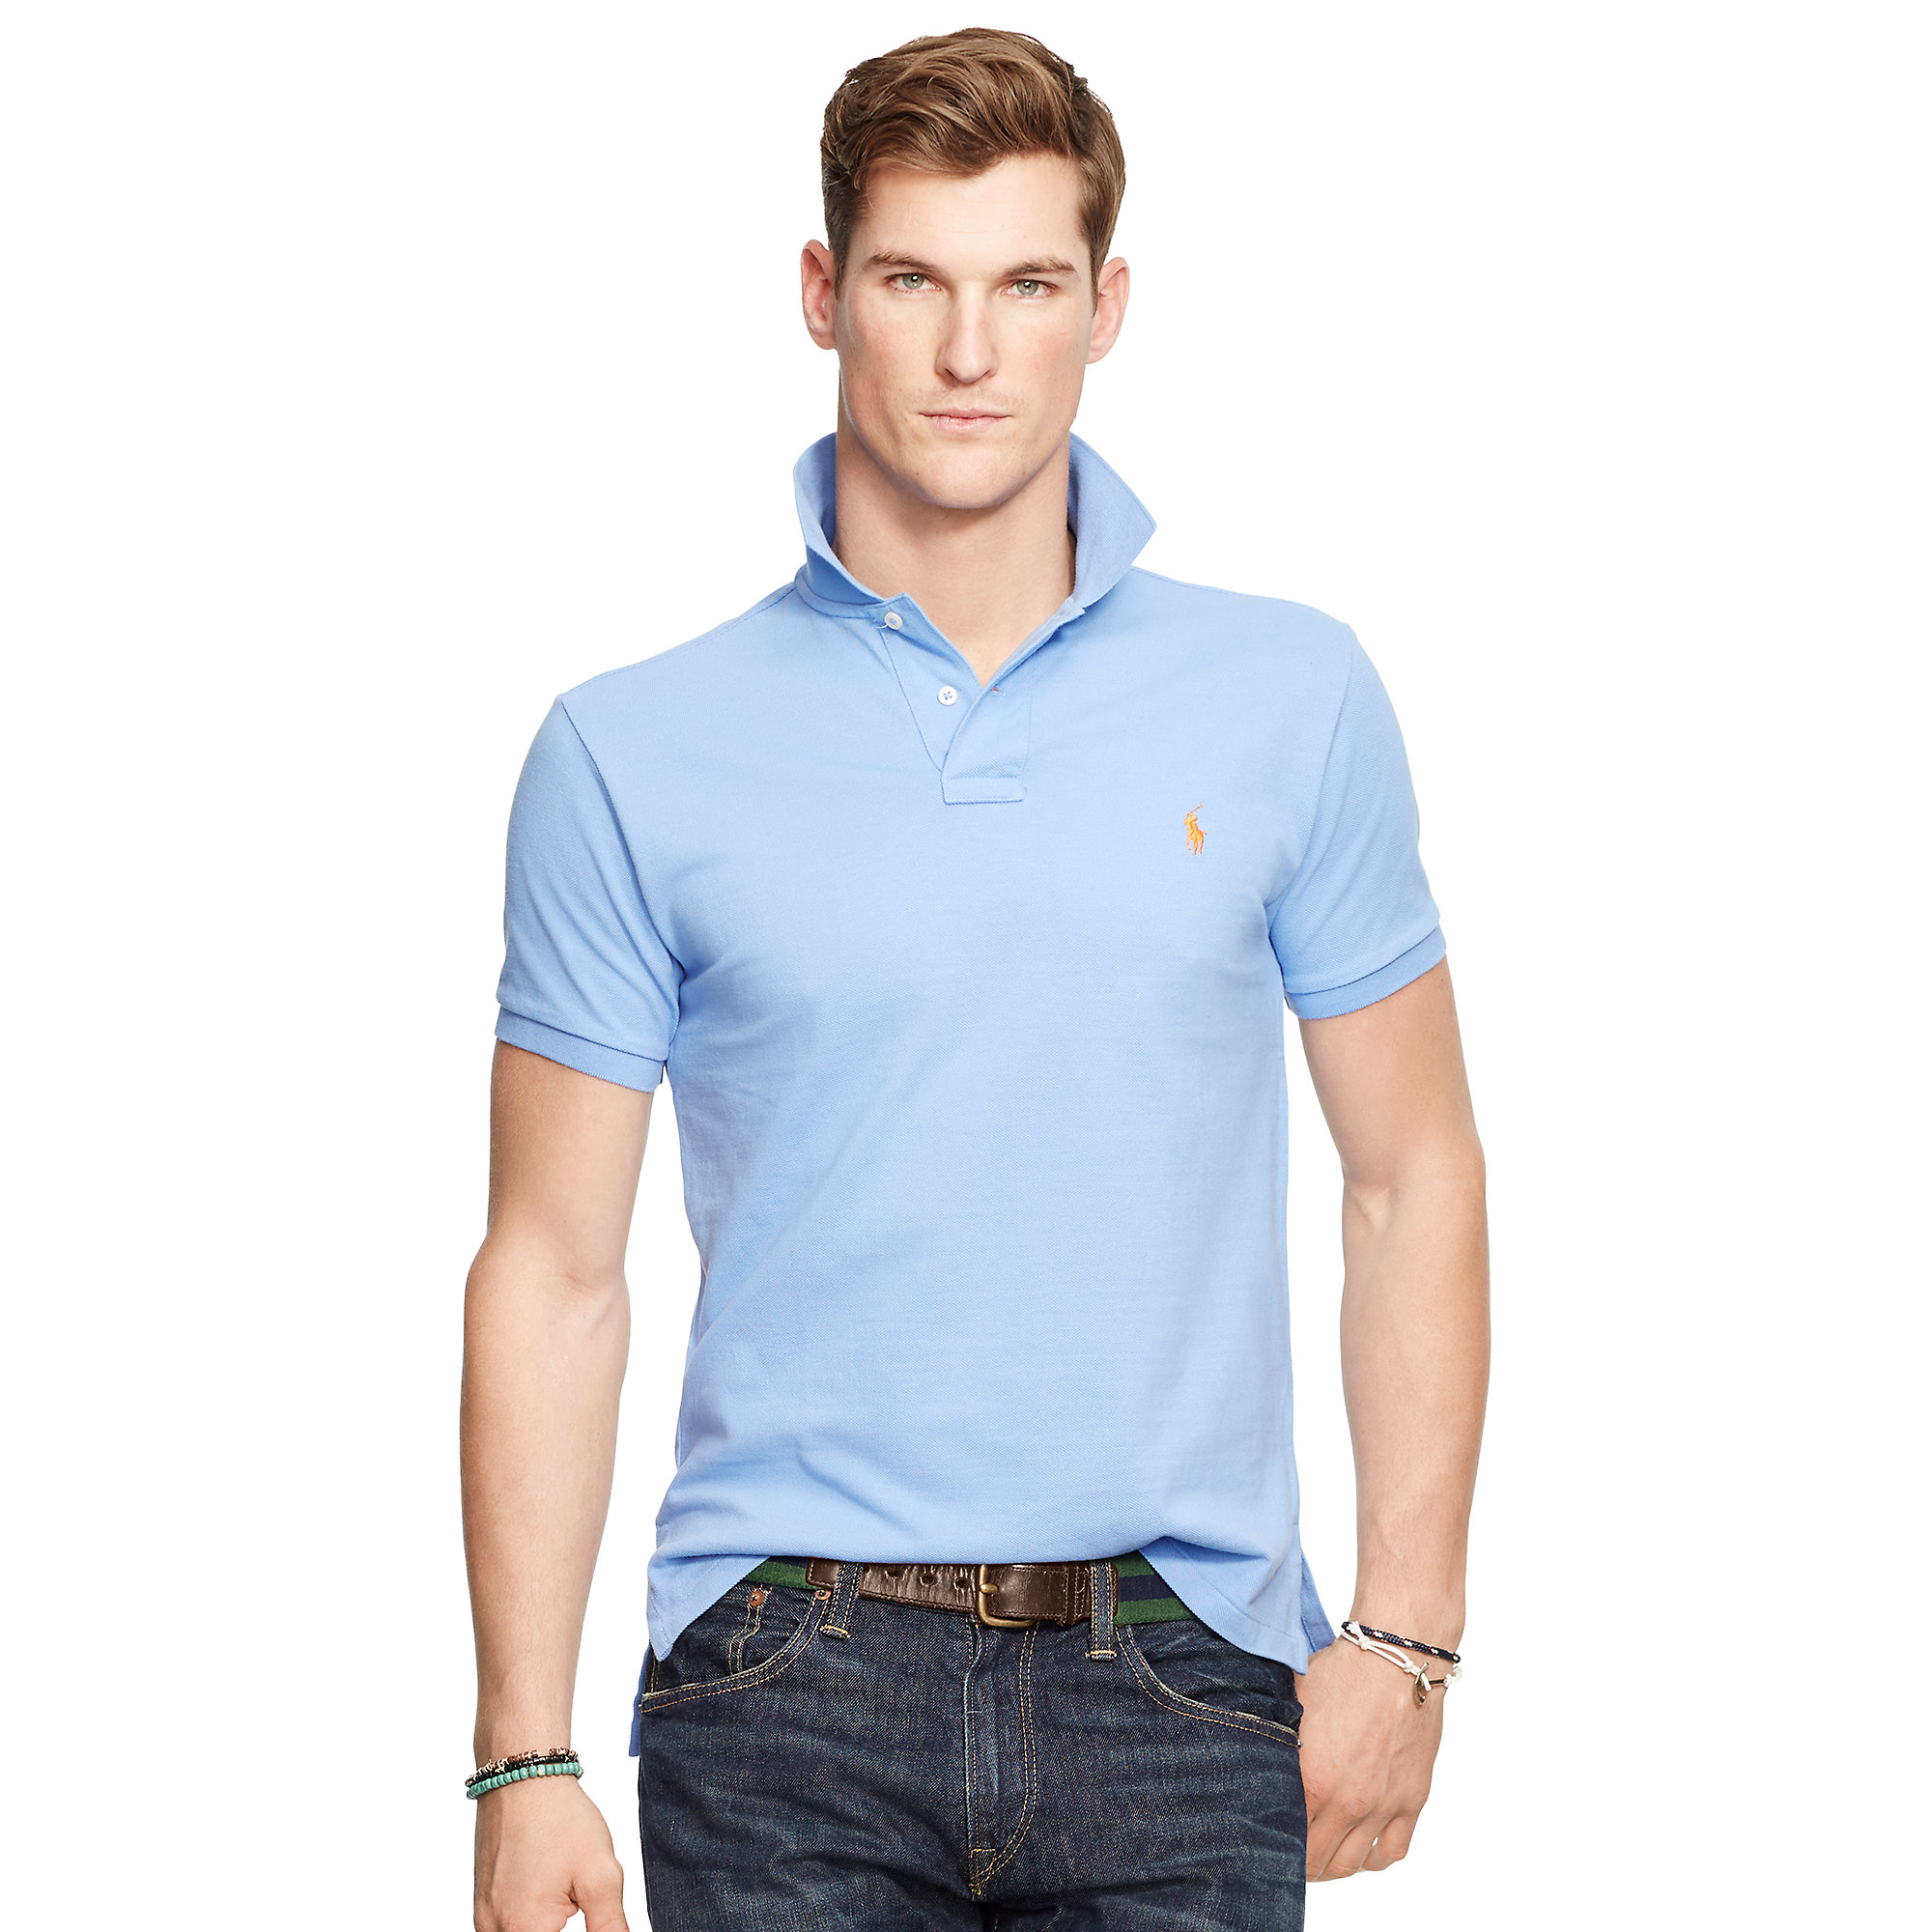 5a9e5ca0 Polo Ralph Lauren Classic-fit Mesh Polo Shirt in Blue for Men - Lyst